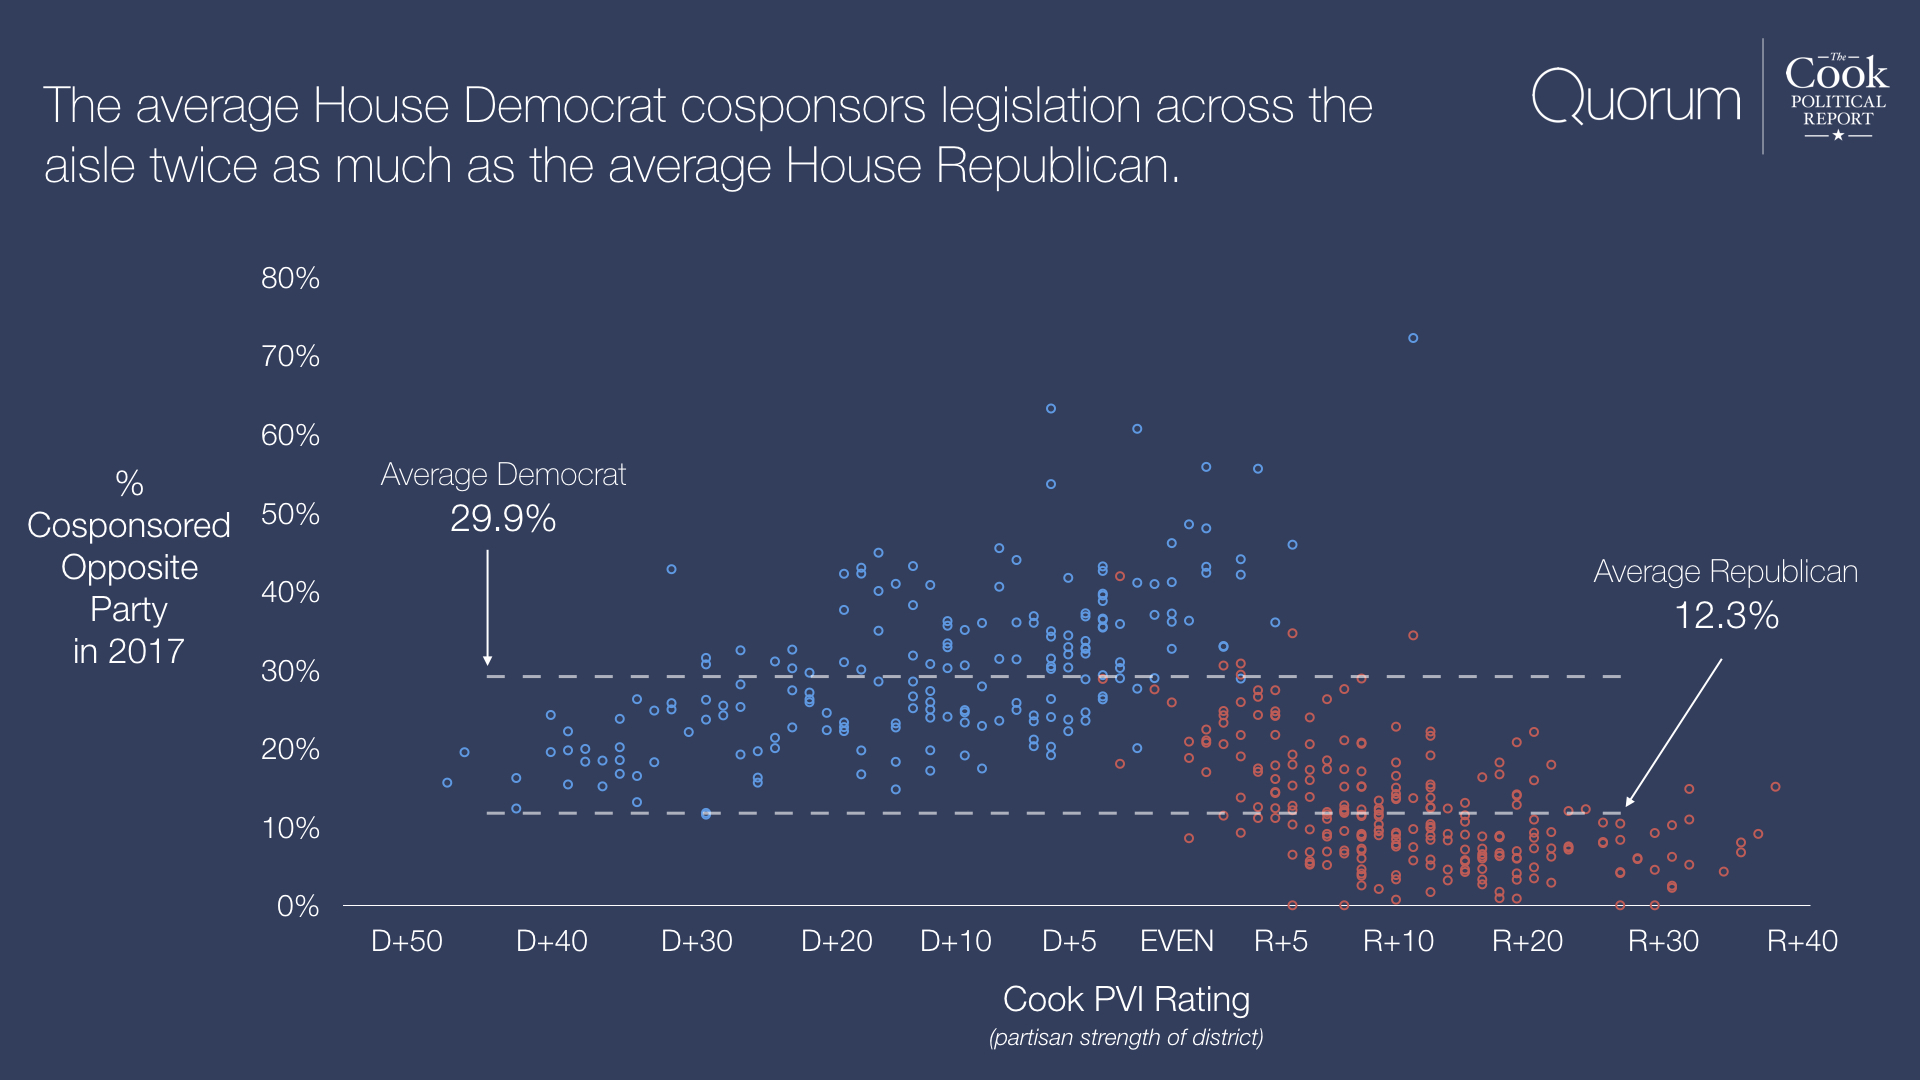 The average House Democrat cosponsors legislation across the aisle twice as much as the average House Republican.